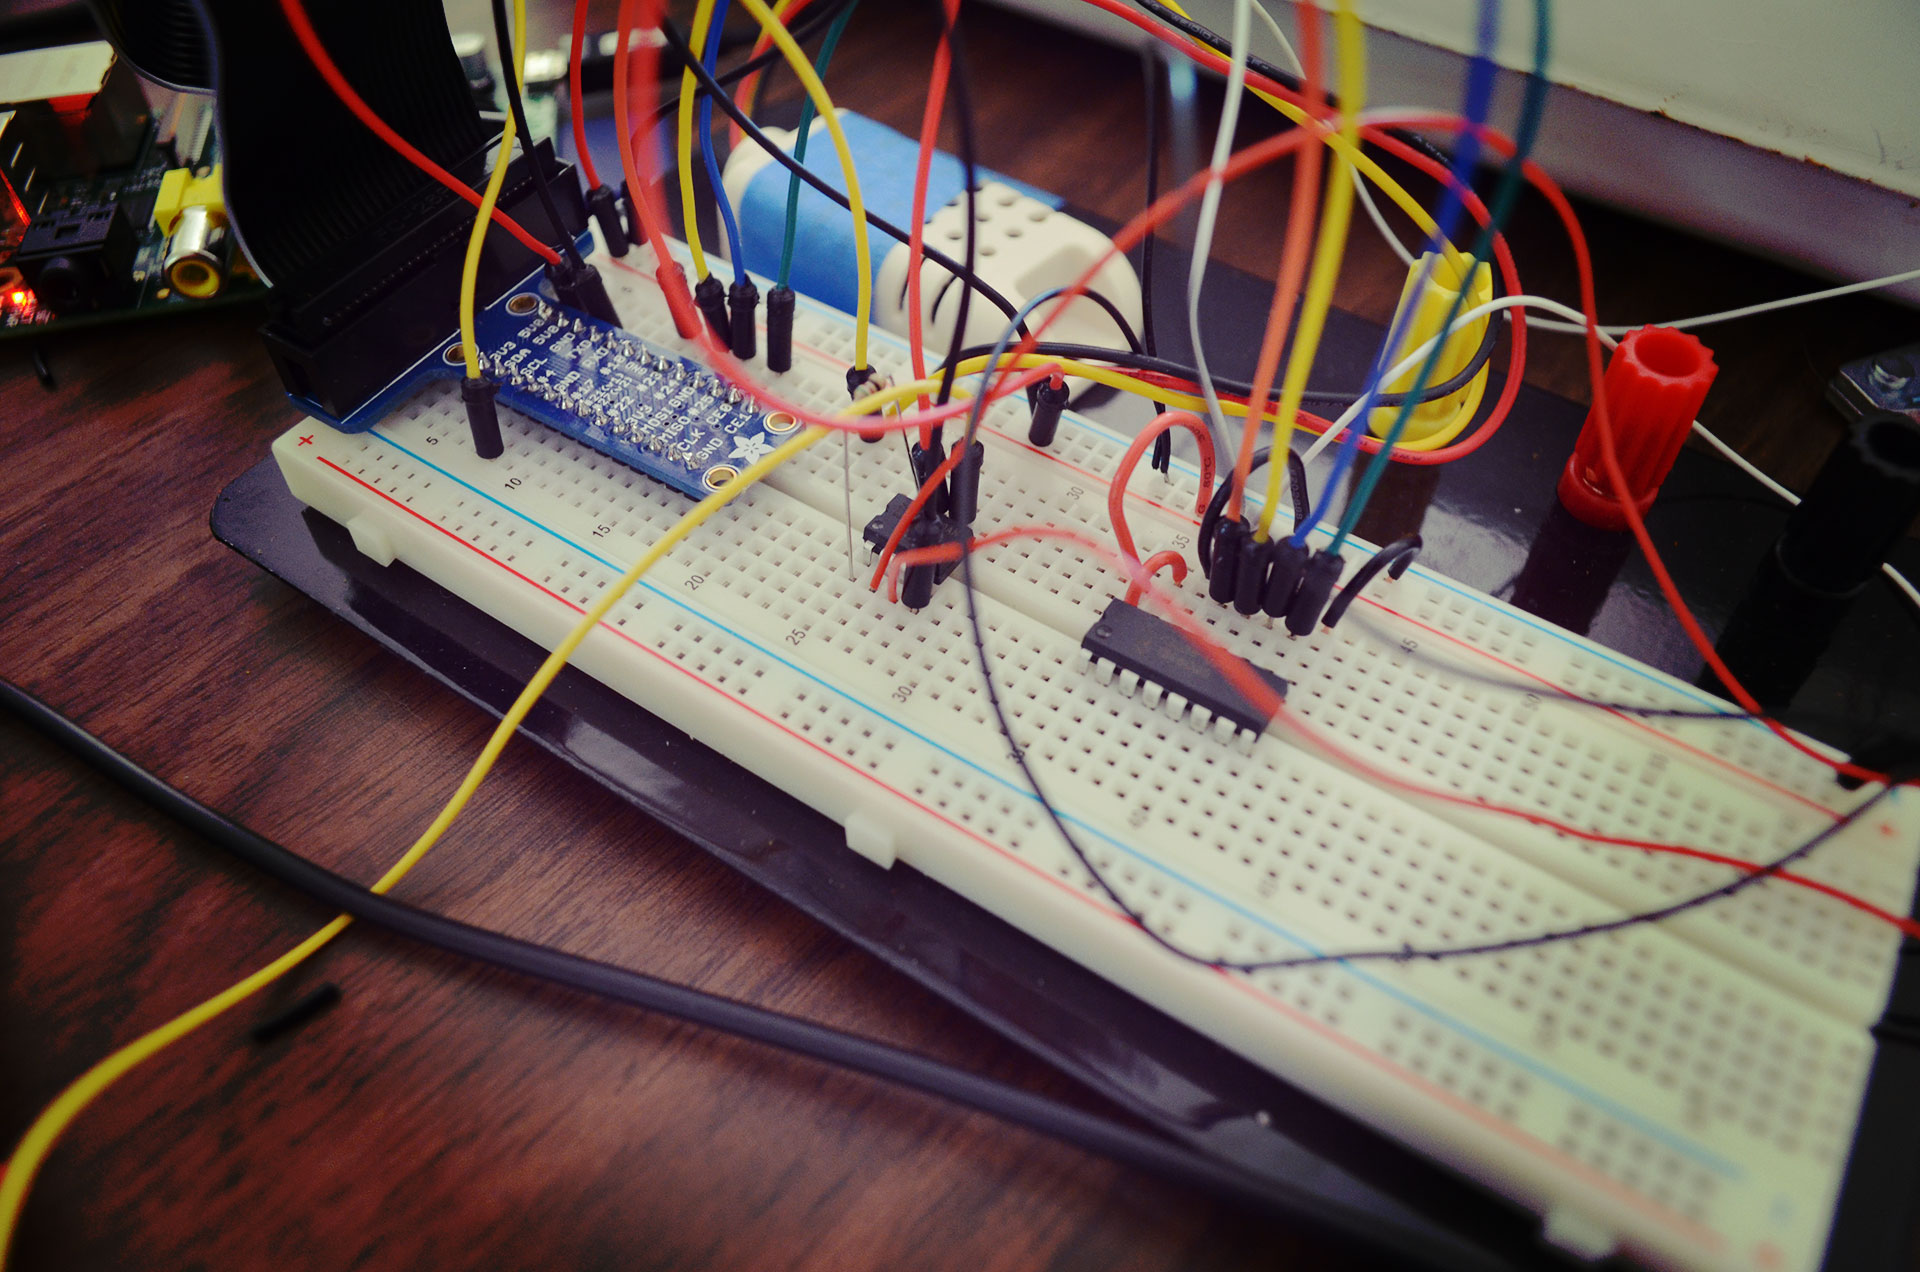 Now the circuit has the A/D converter integrated... need to take output from this back into Pi